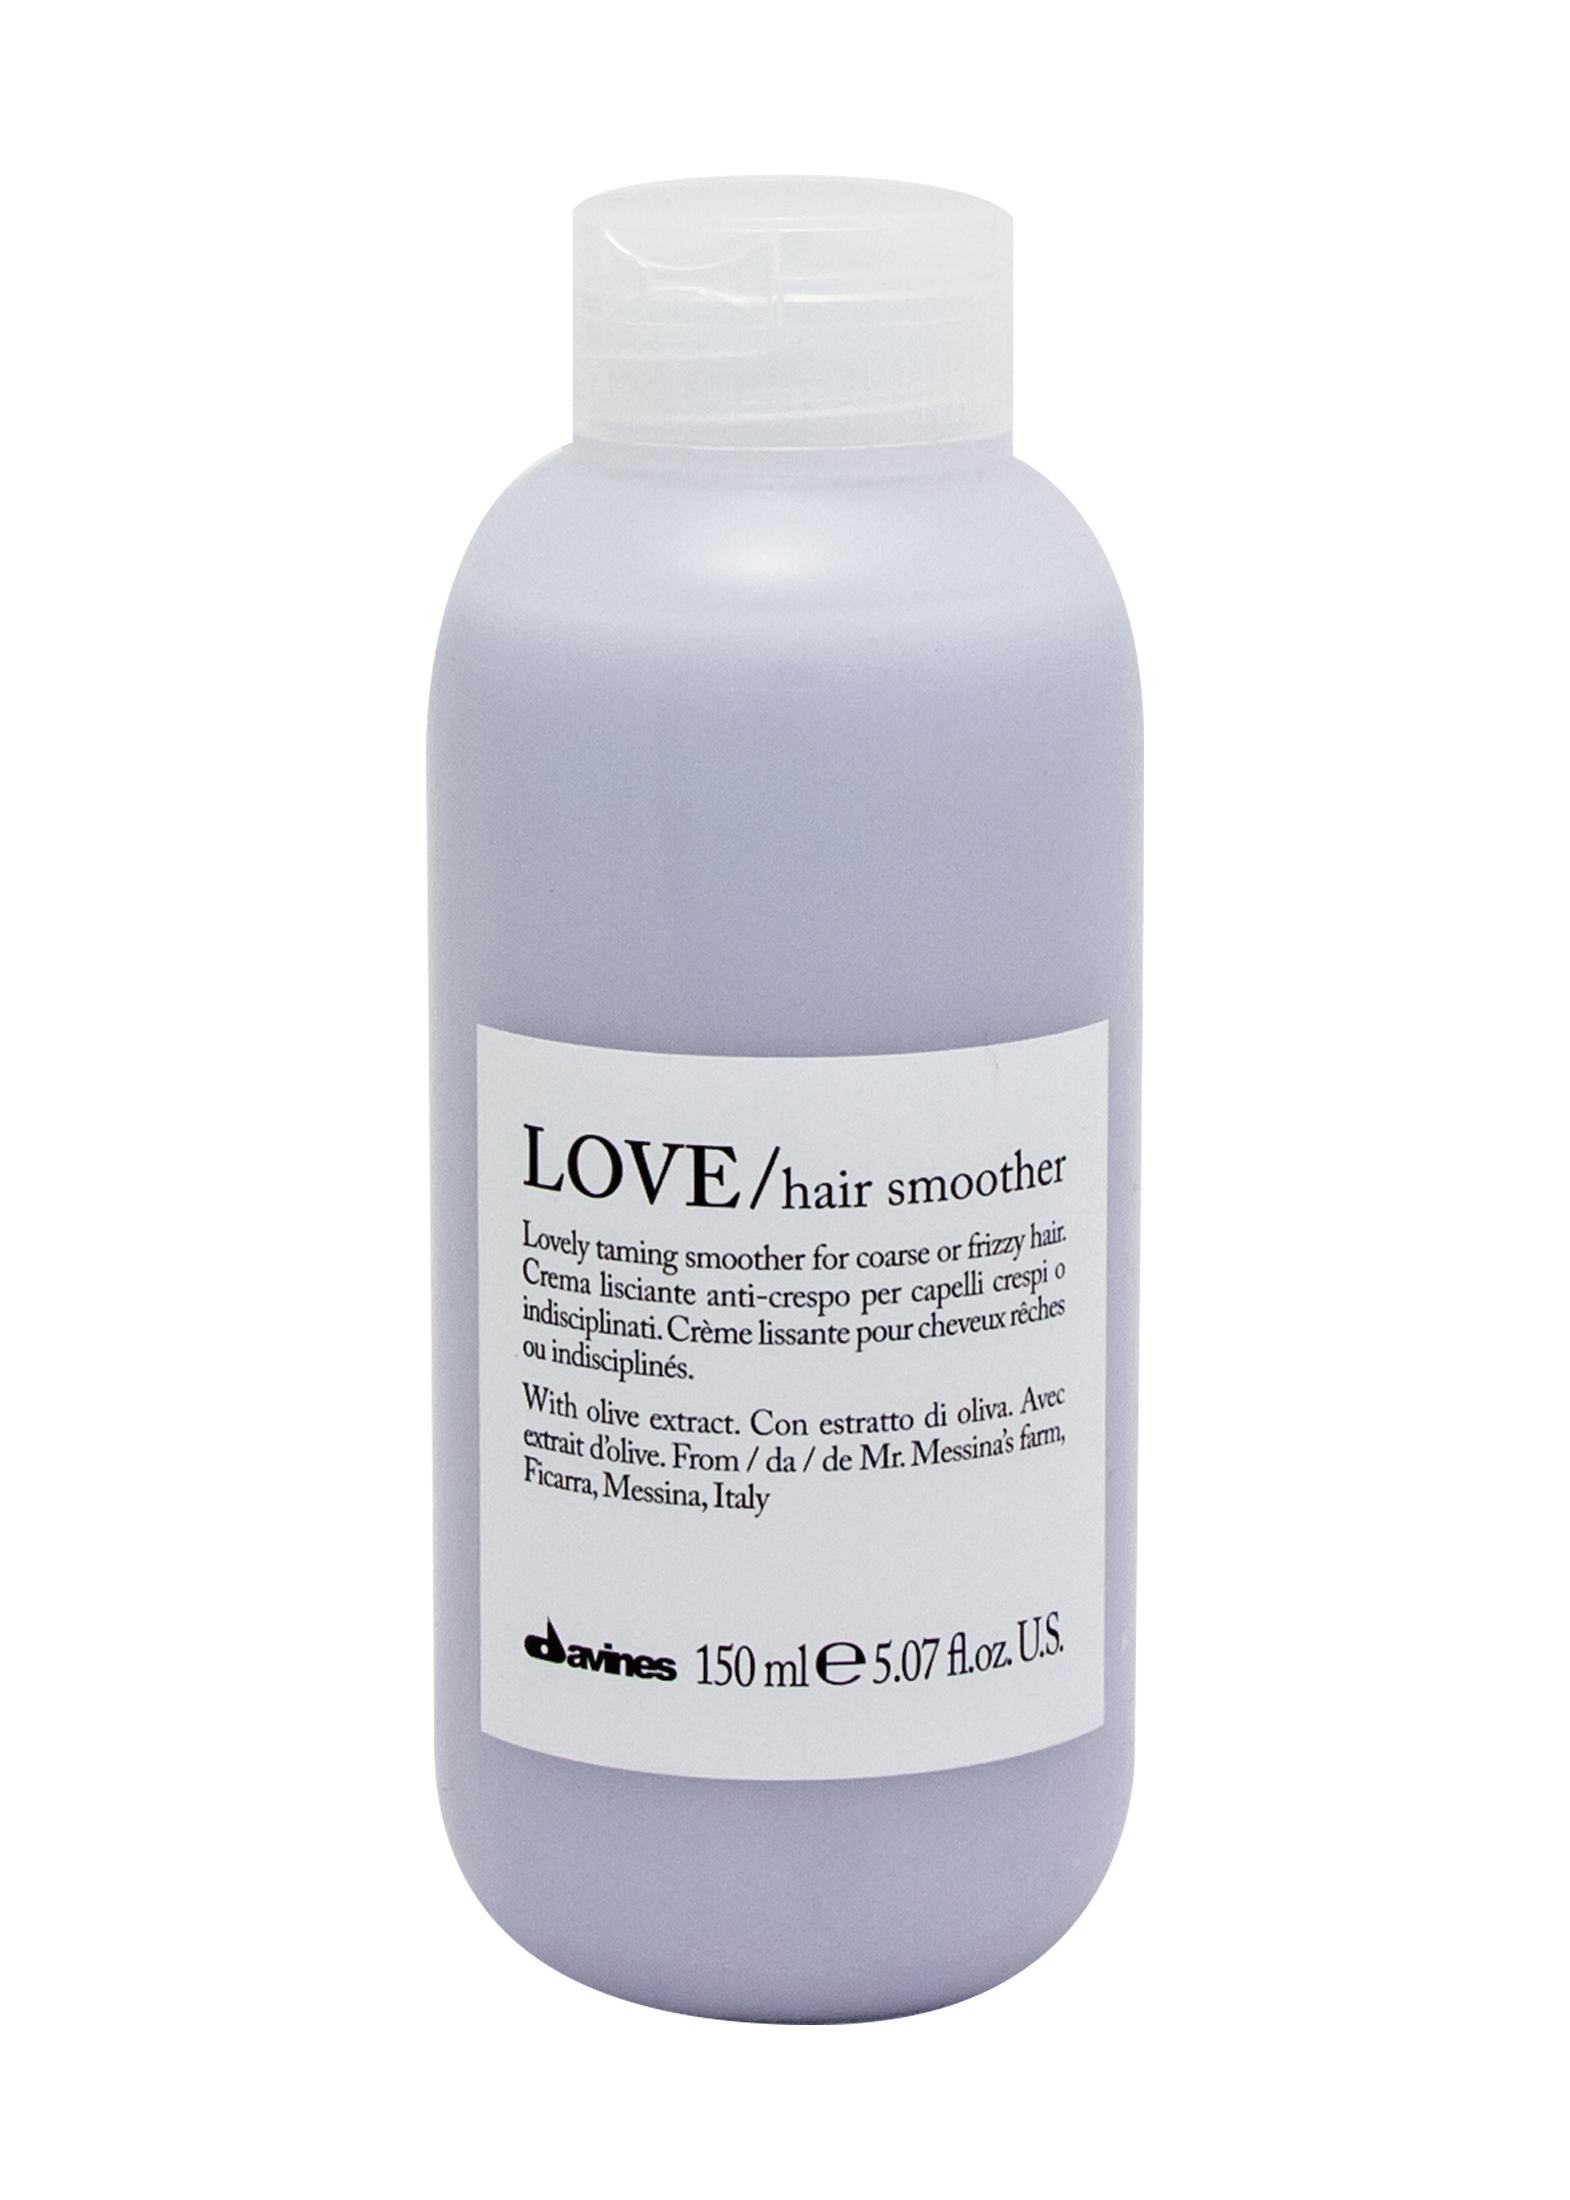 DEHC LOVE Hair Smoother 150ml image number 0